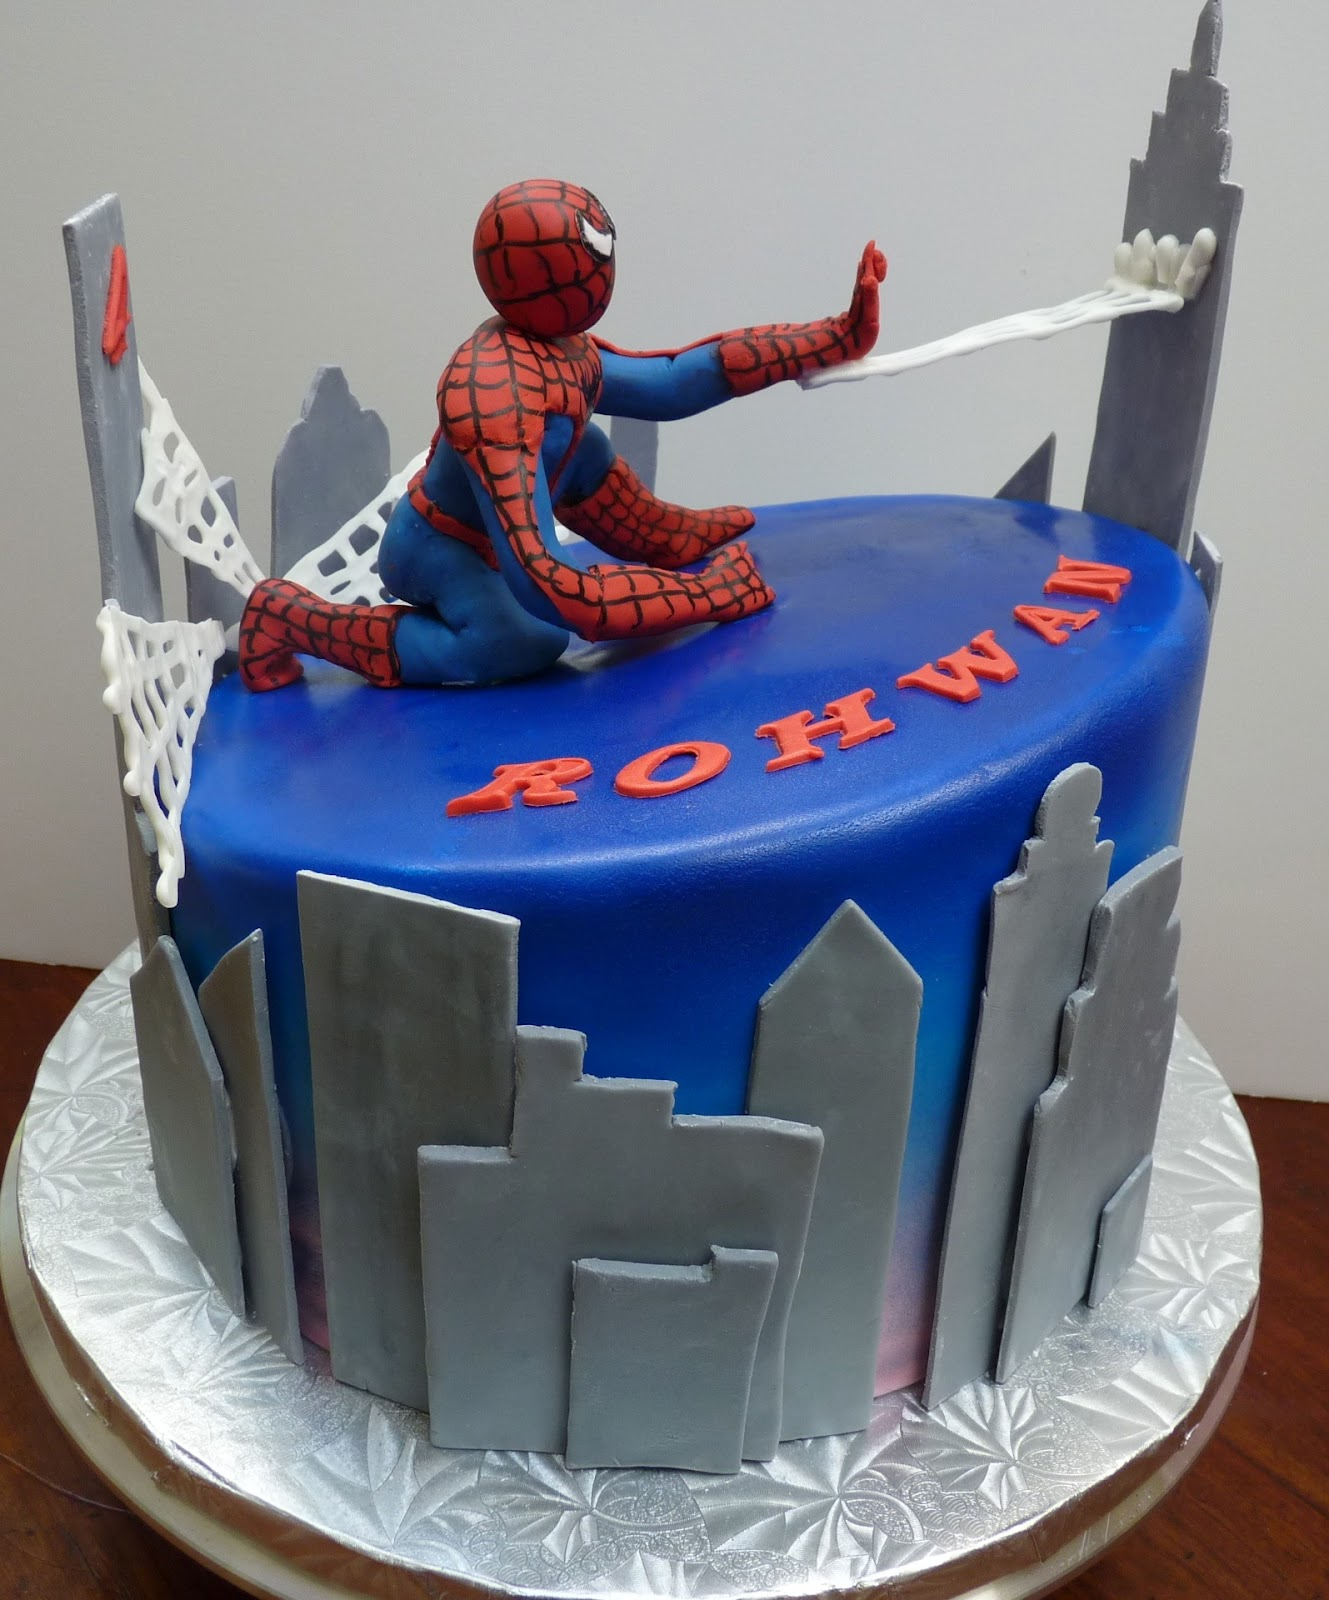 Enchanted Icing Spiderman Takes The Cake